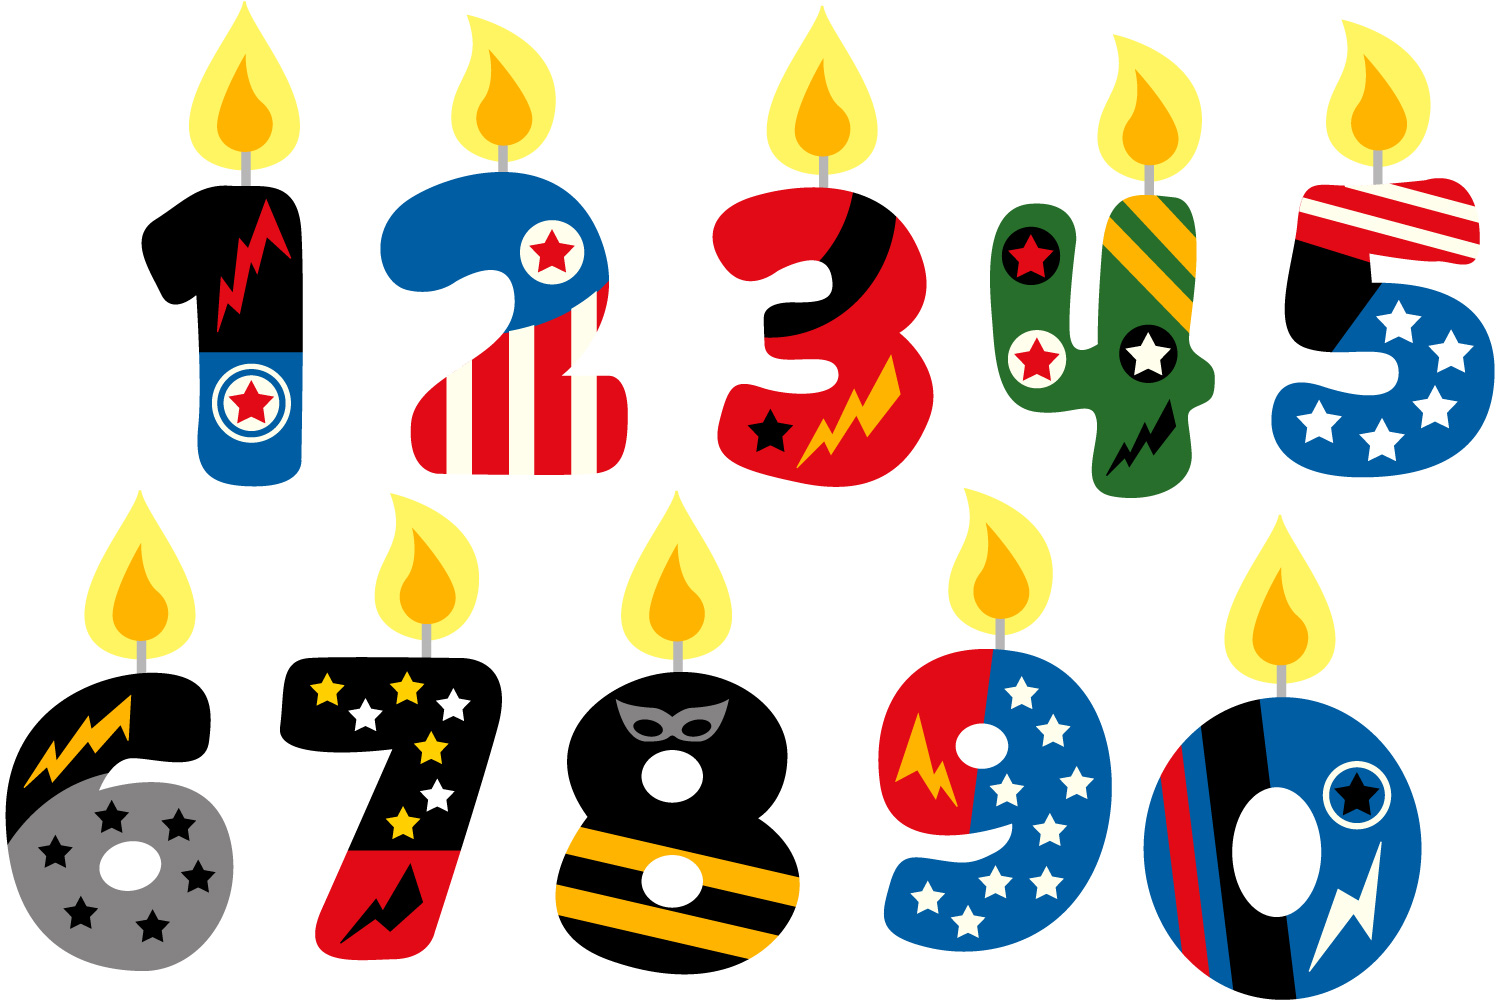 Number clipart superhero. Birthday candles graph design